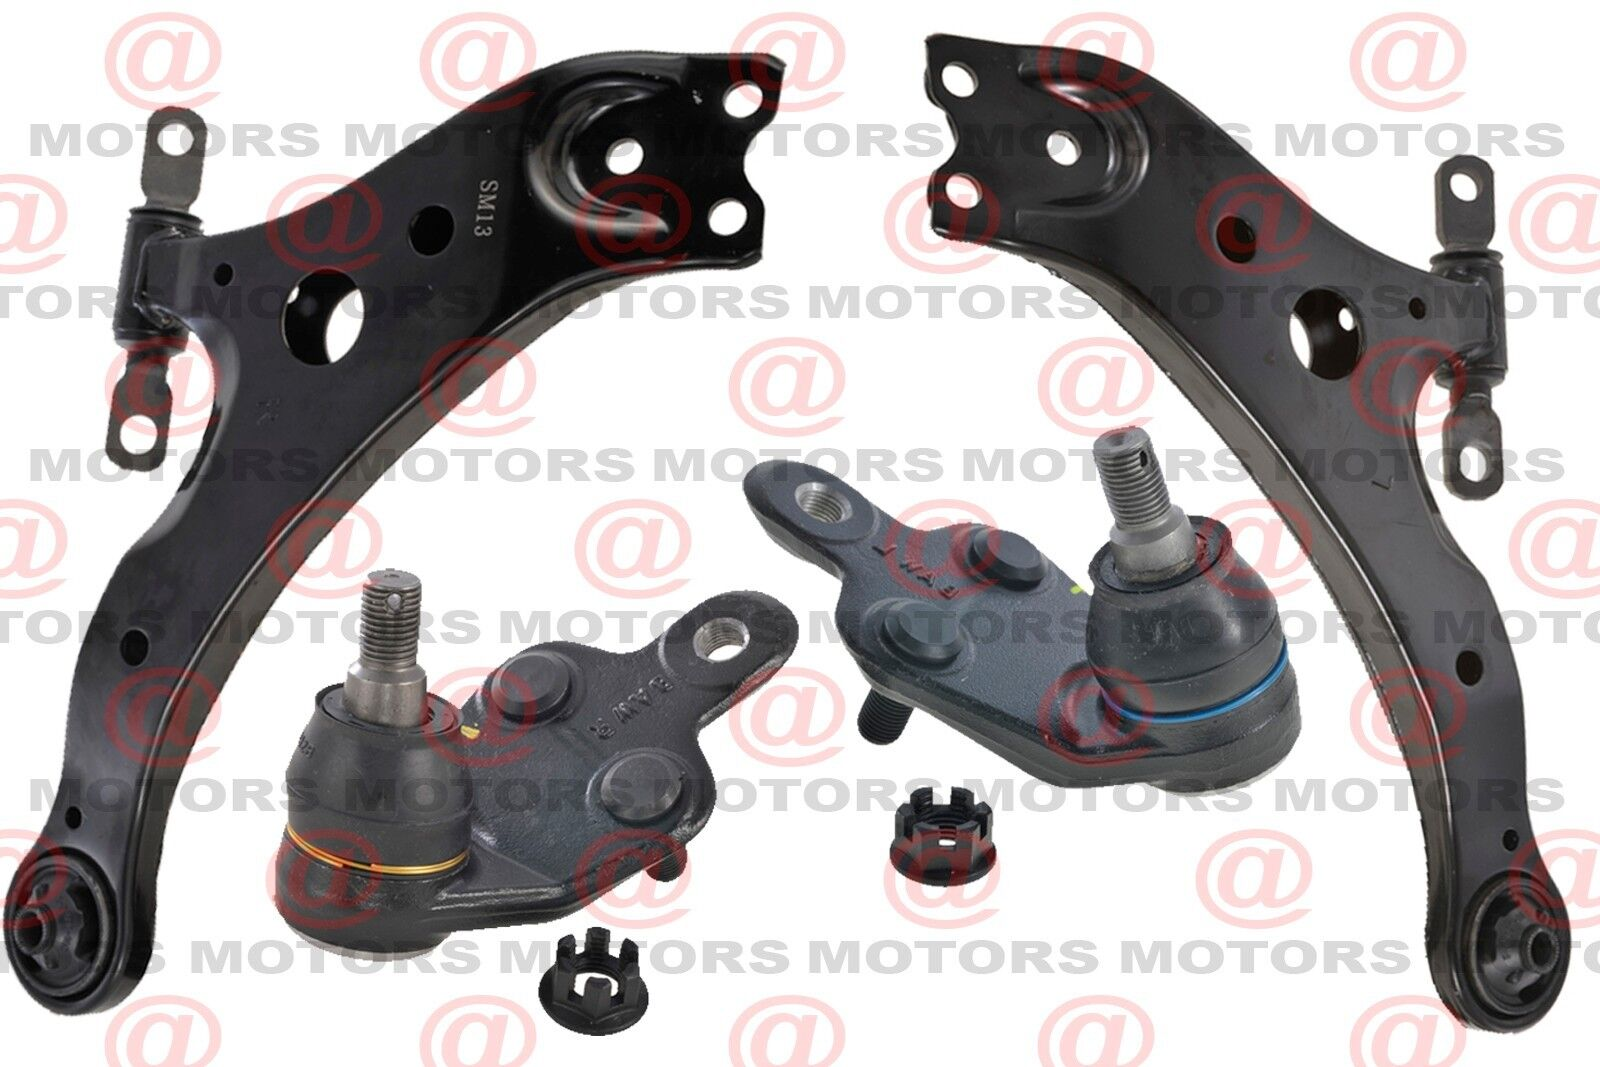 for toyota camry 2002 2012 front left right lower control arms with ball joints. Black Bedroom Furniture Sets. Home Design Ideas